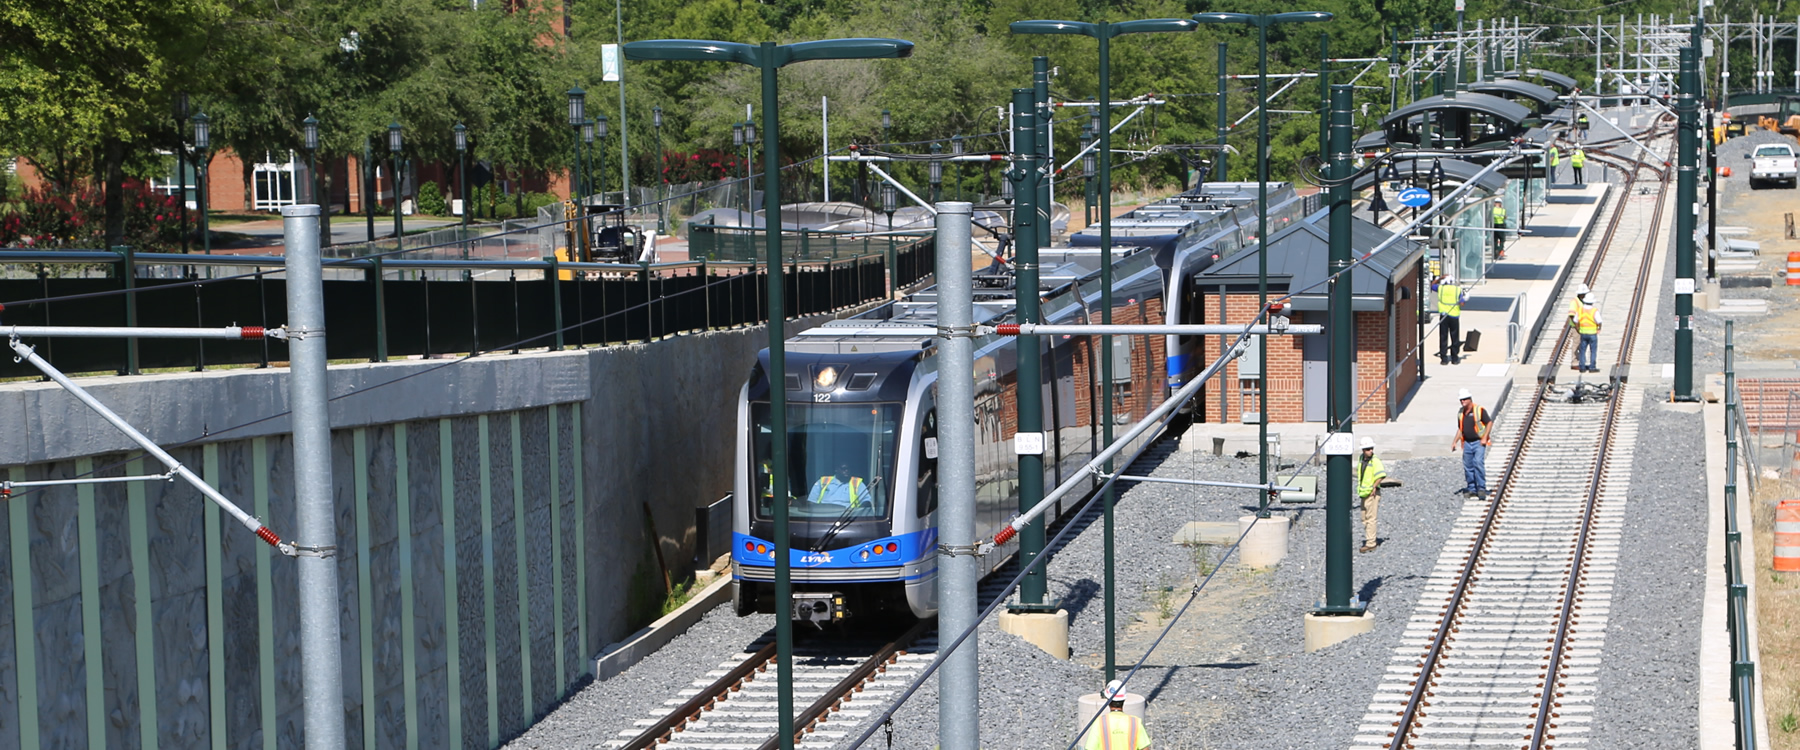 Light rail connects us - First train arrives on campus during testing